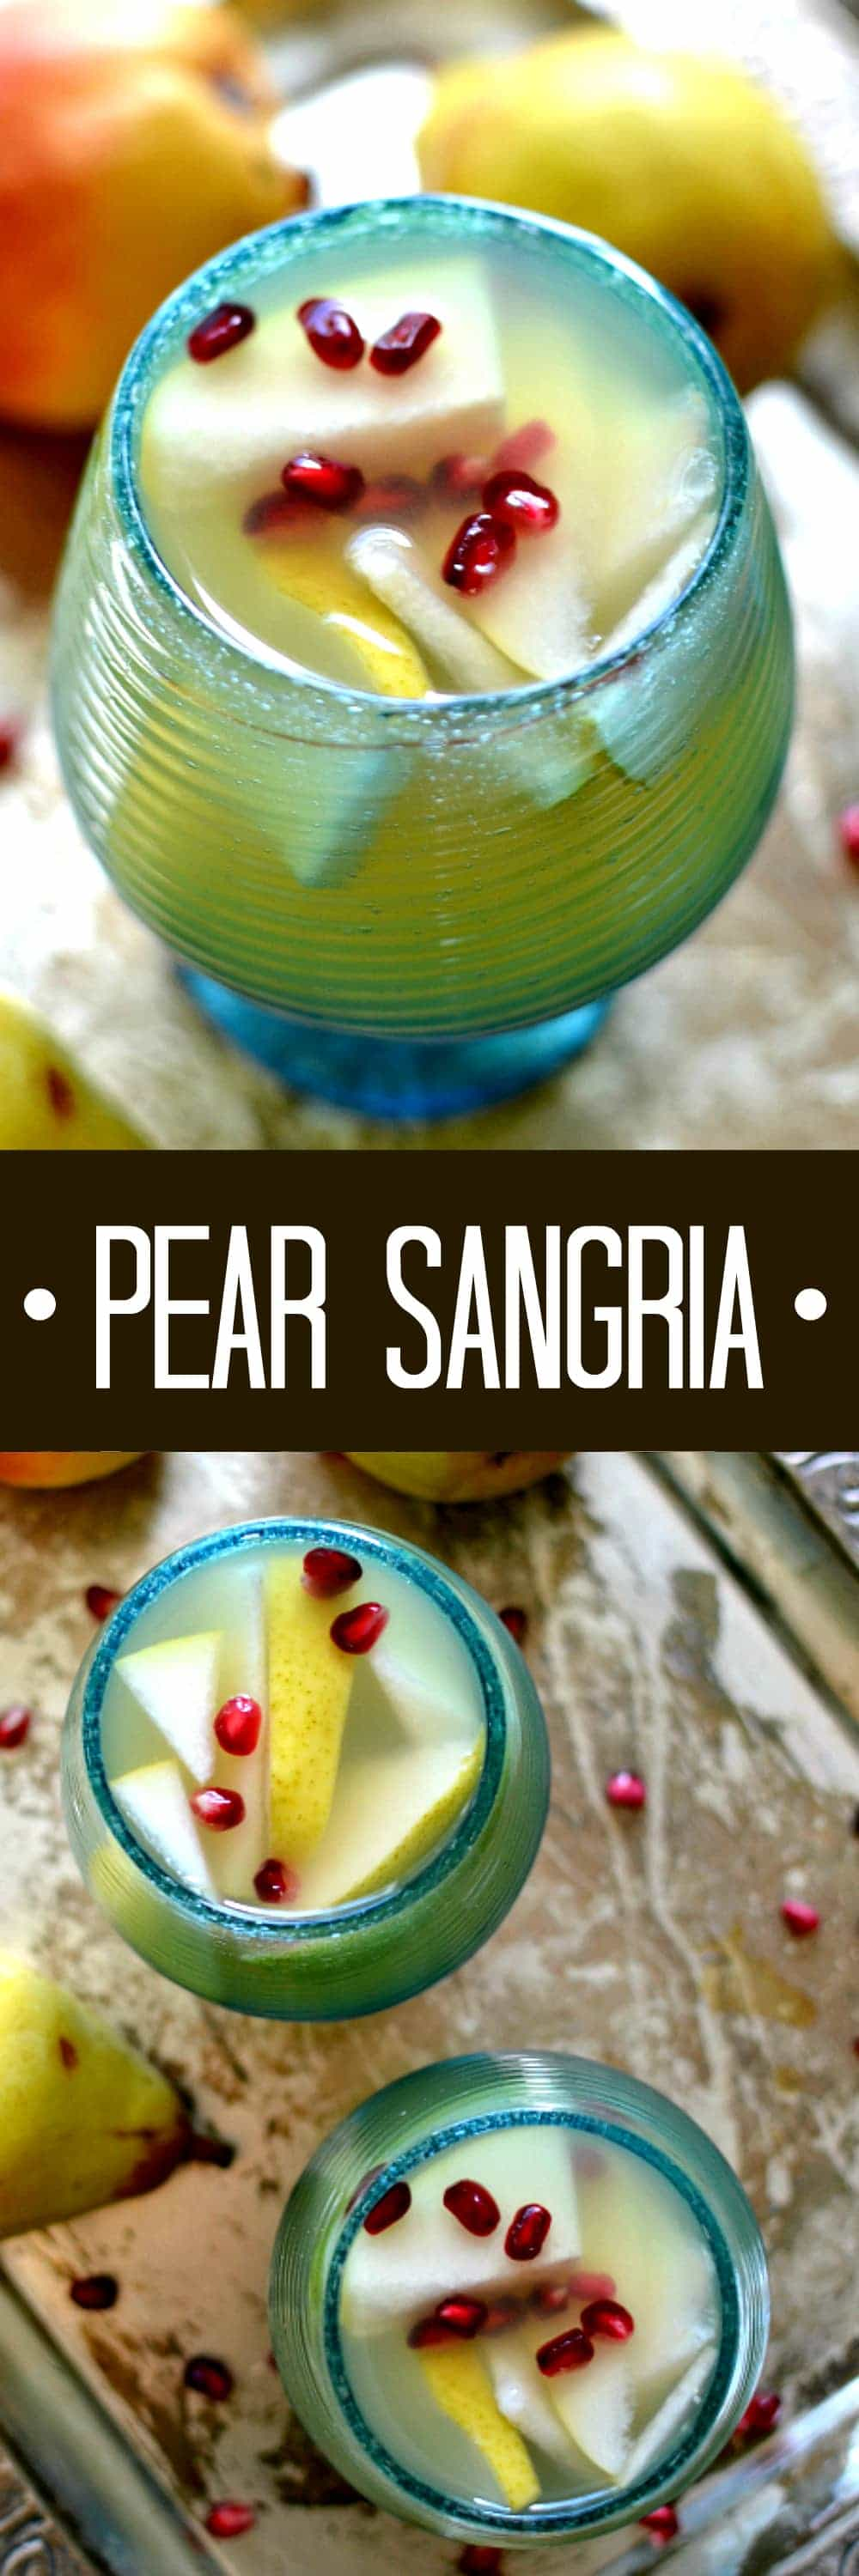 5-ingredient Pear Sangria with sliced pears and pomegranate seeds. Perfectly refreshing for fall!